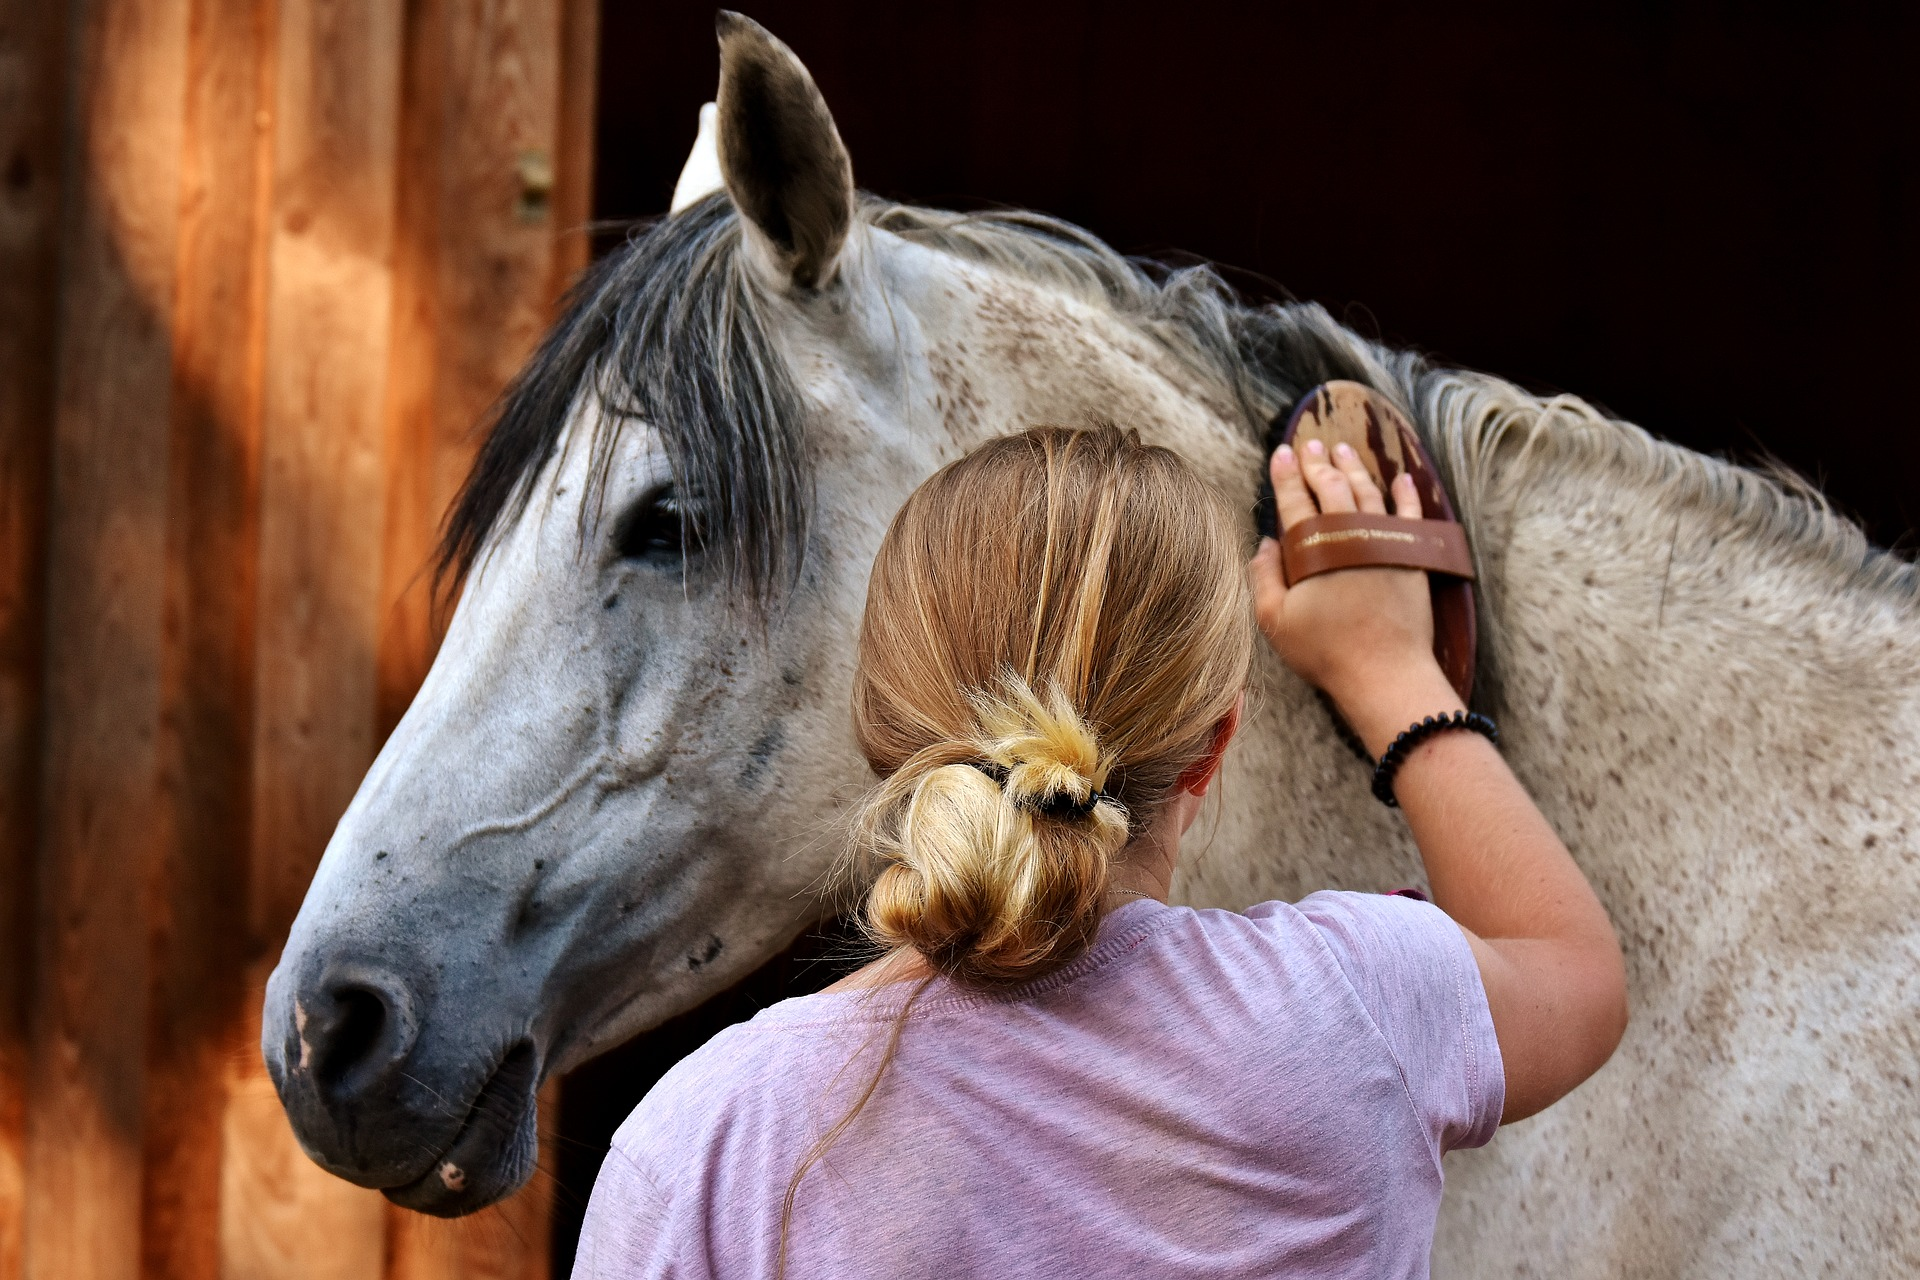 Your horse is better cared for than you are. And that needs to change.